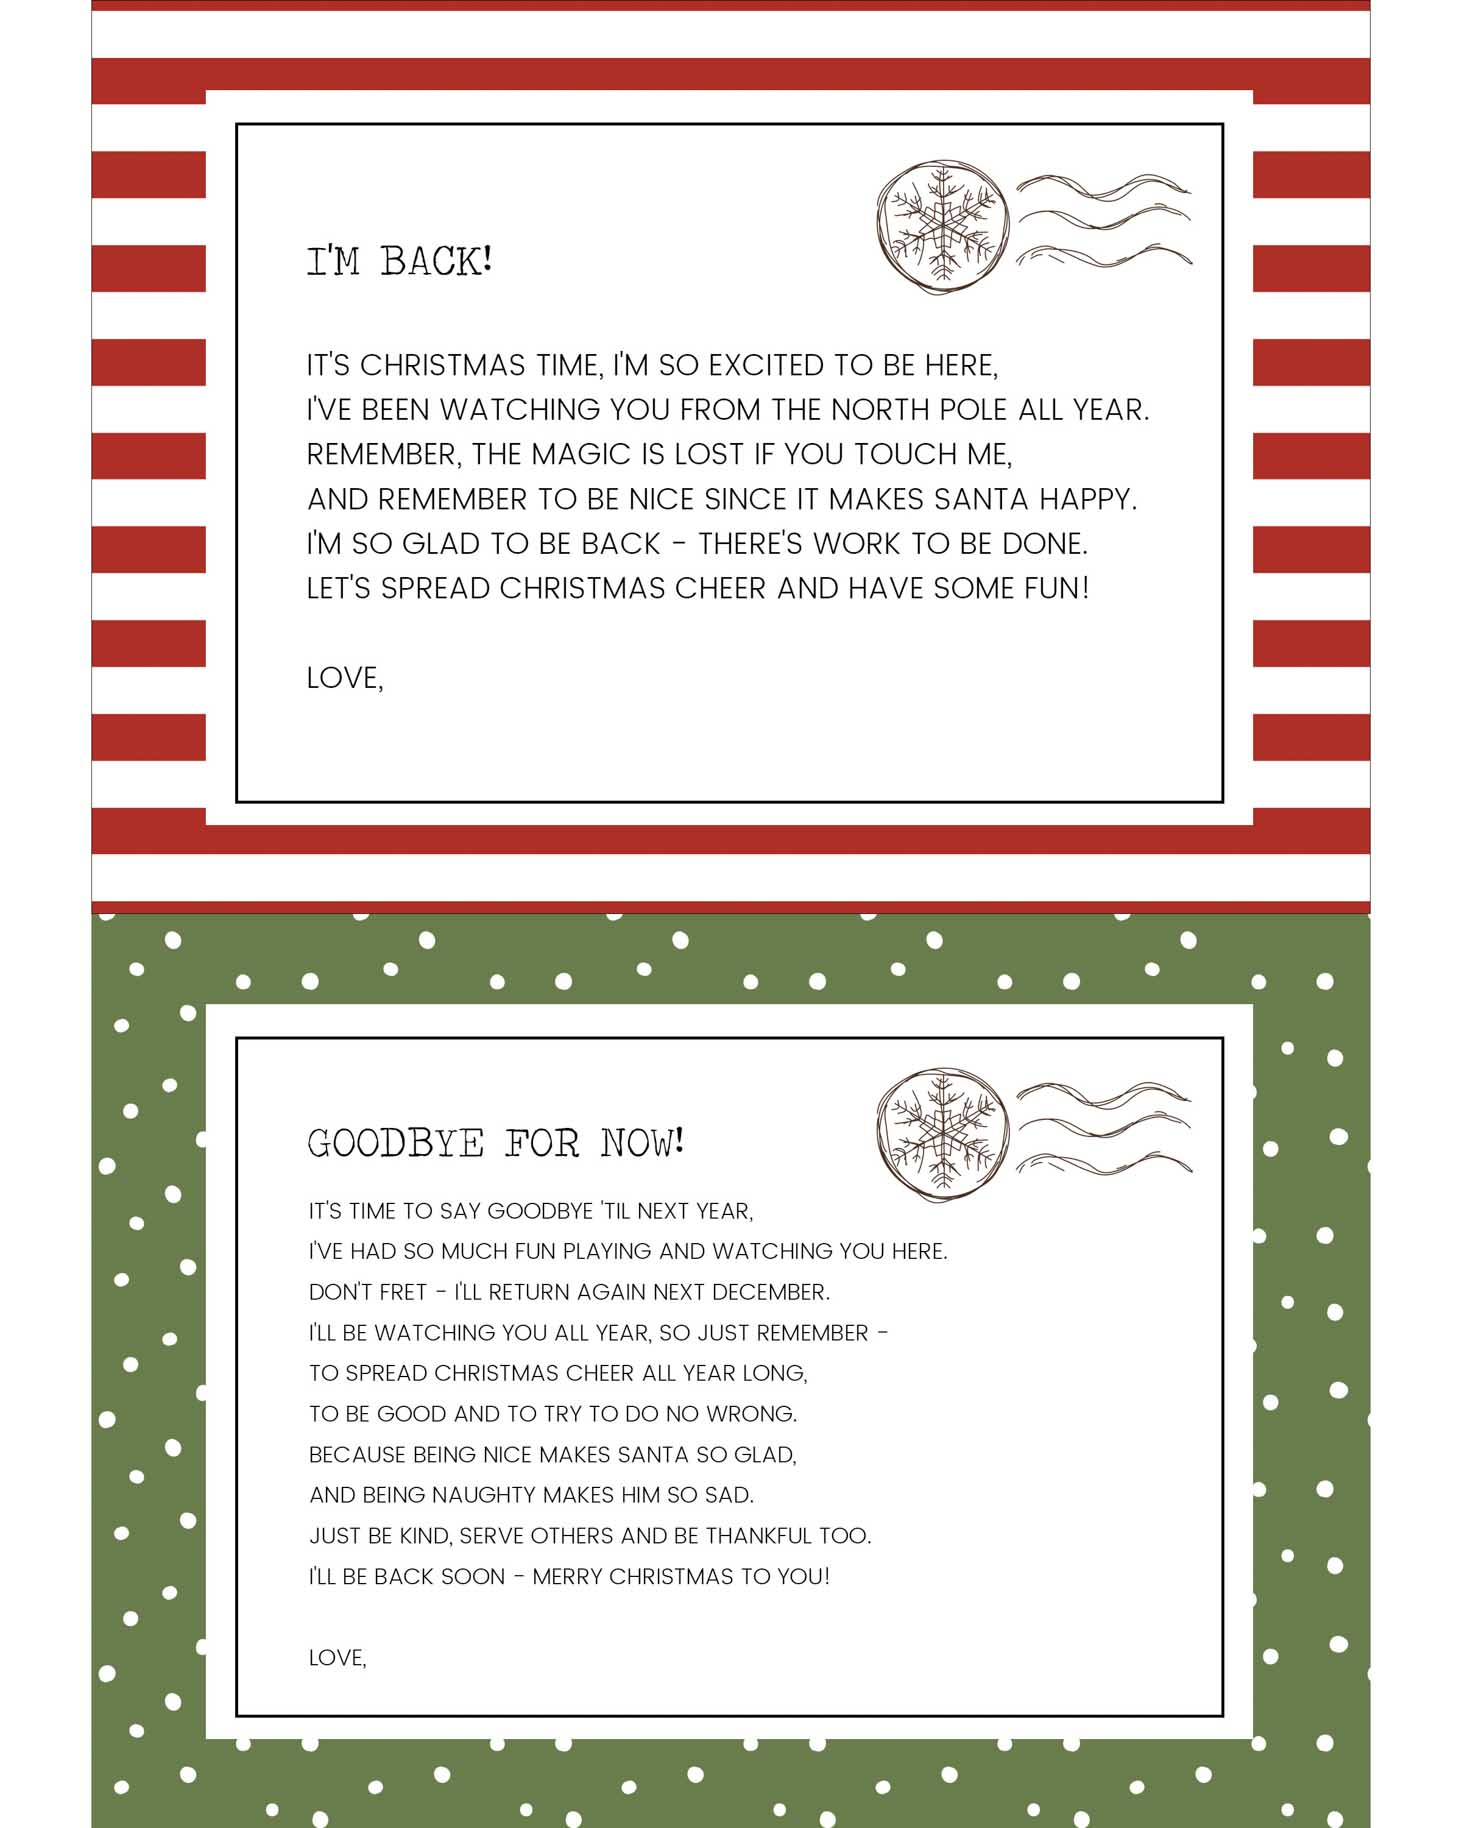 Elf on the Shelf Letters - Elf on the Shelf Goodbye Letter